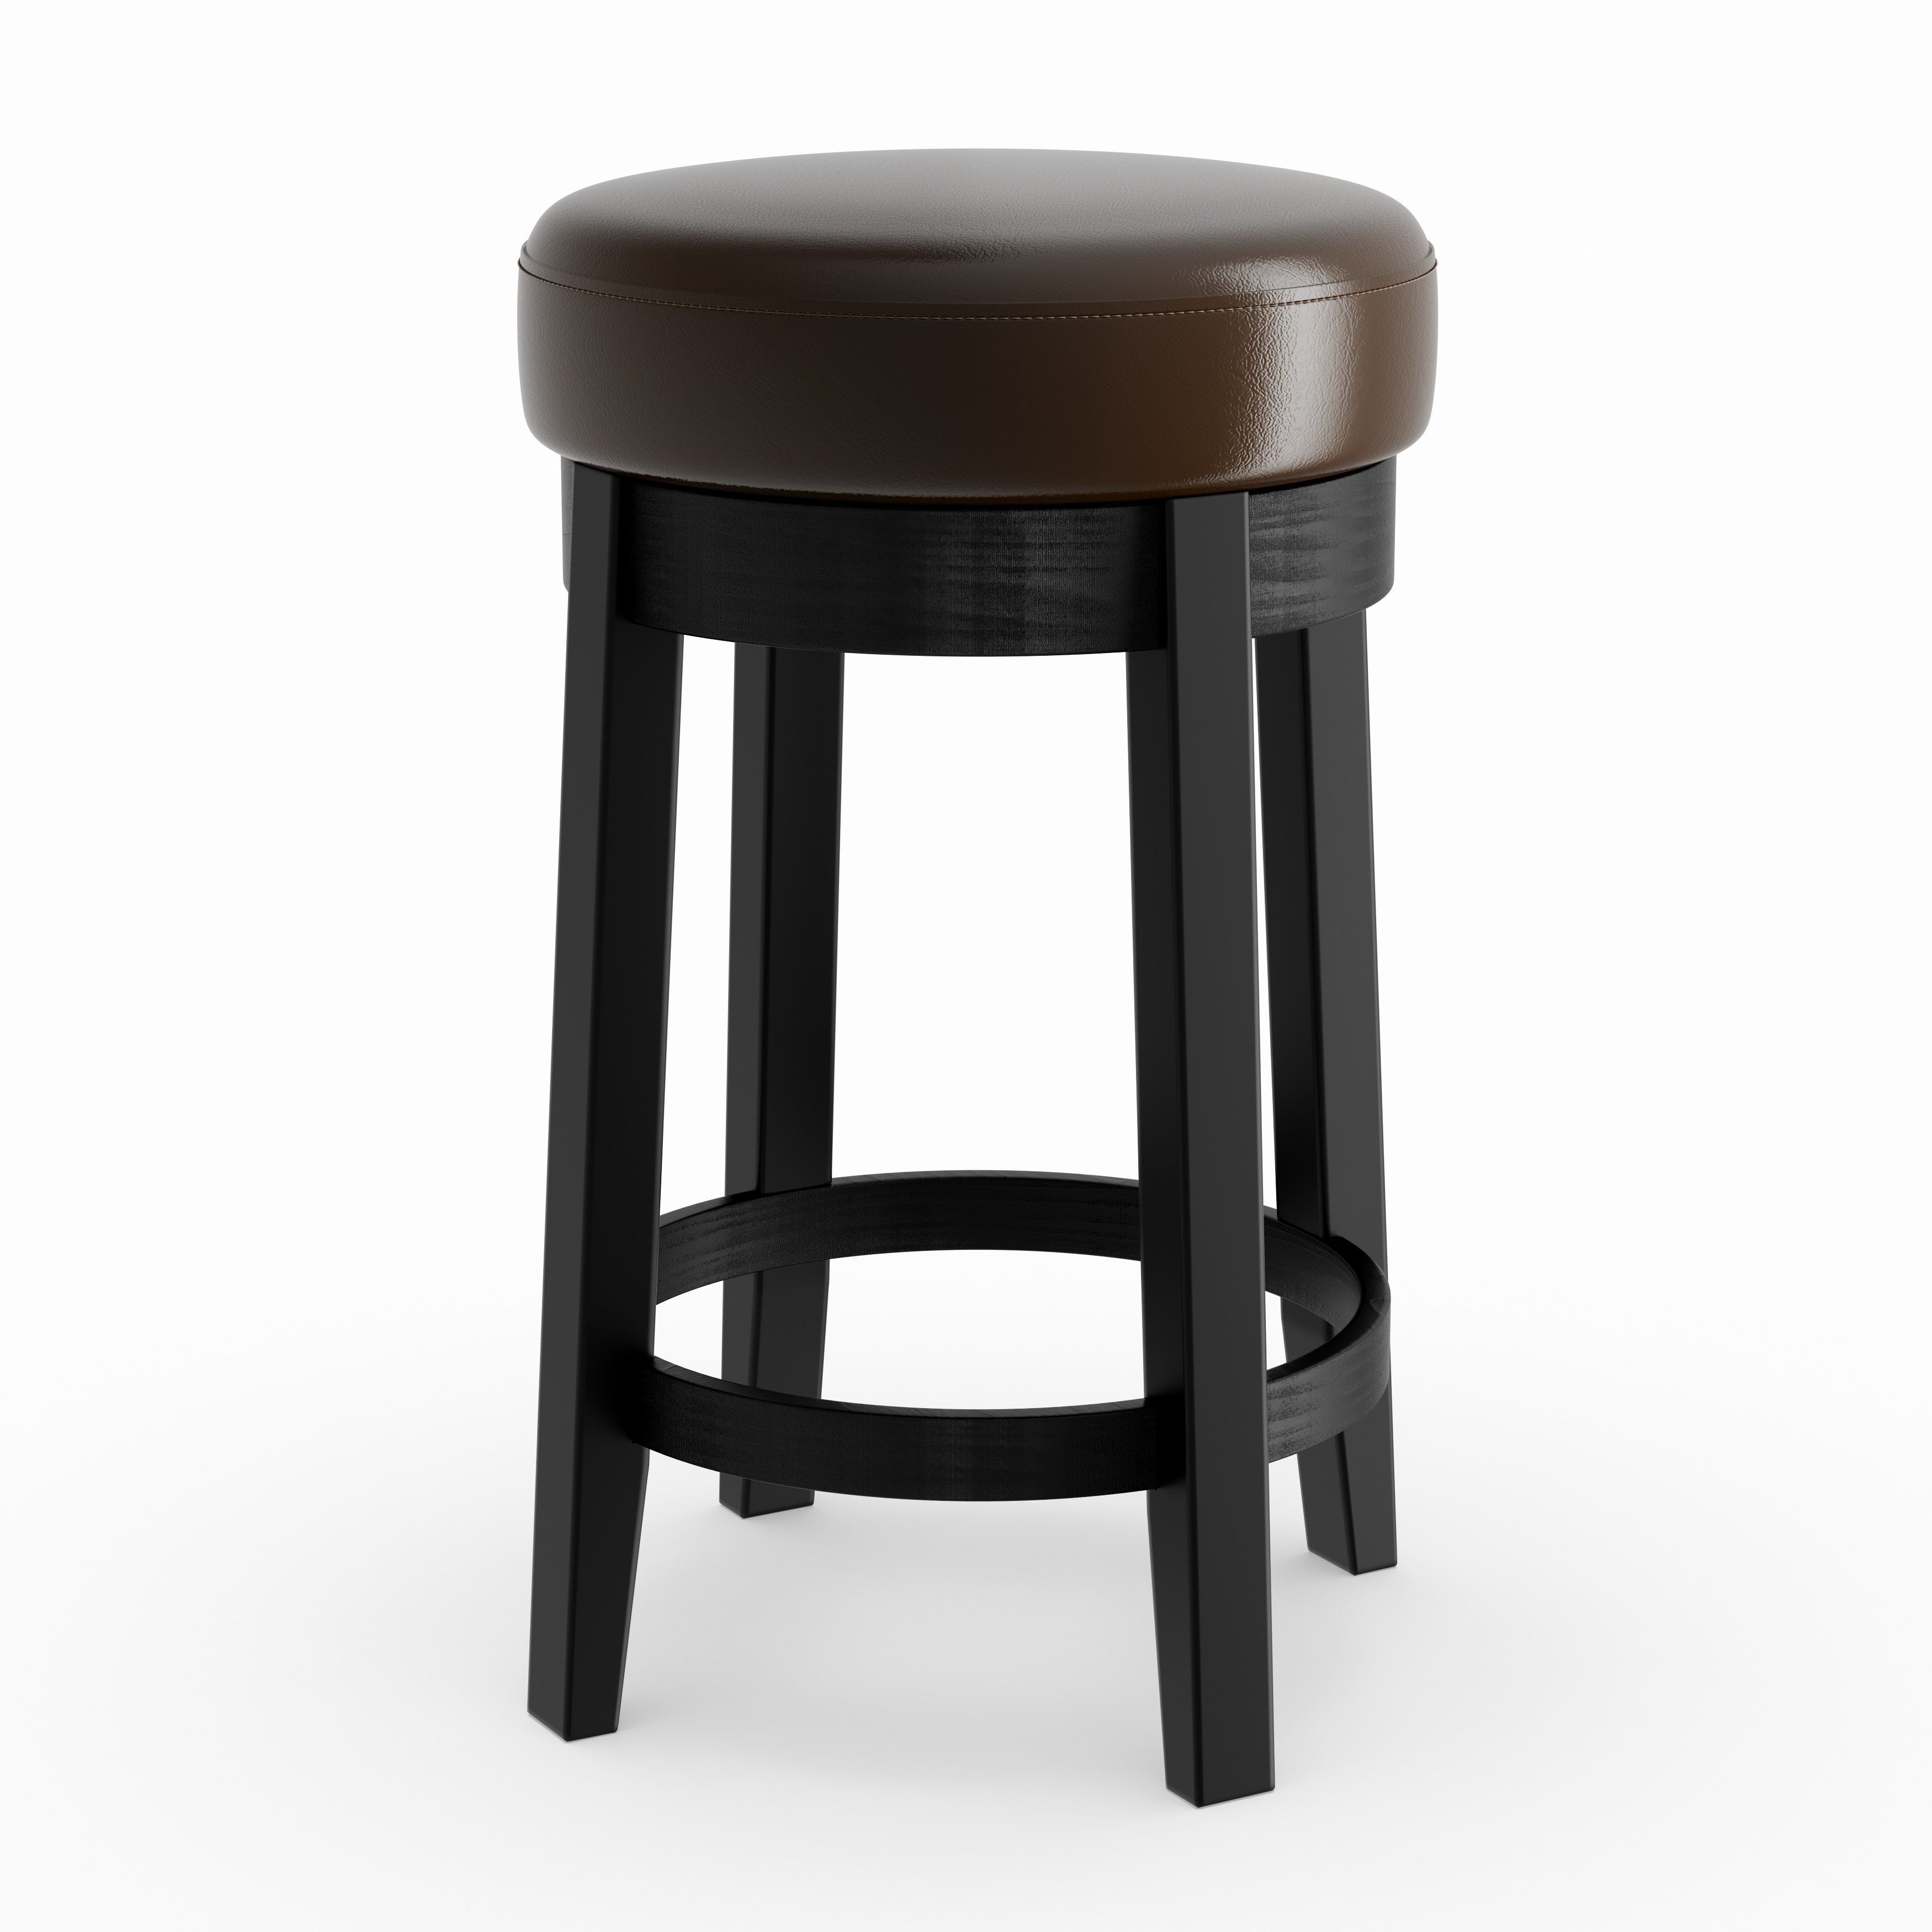 Swell Copper Grove Billerbeck Swivel 26 Inch Counter Stool Unemploymentrelief Wooden Chair Designs For Living Room Unemploymentrelieforg